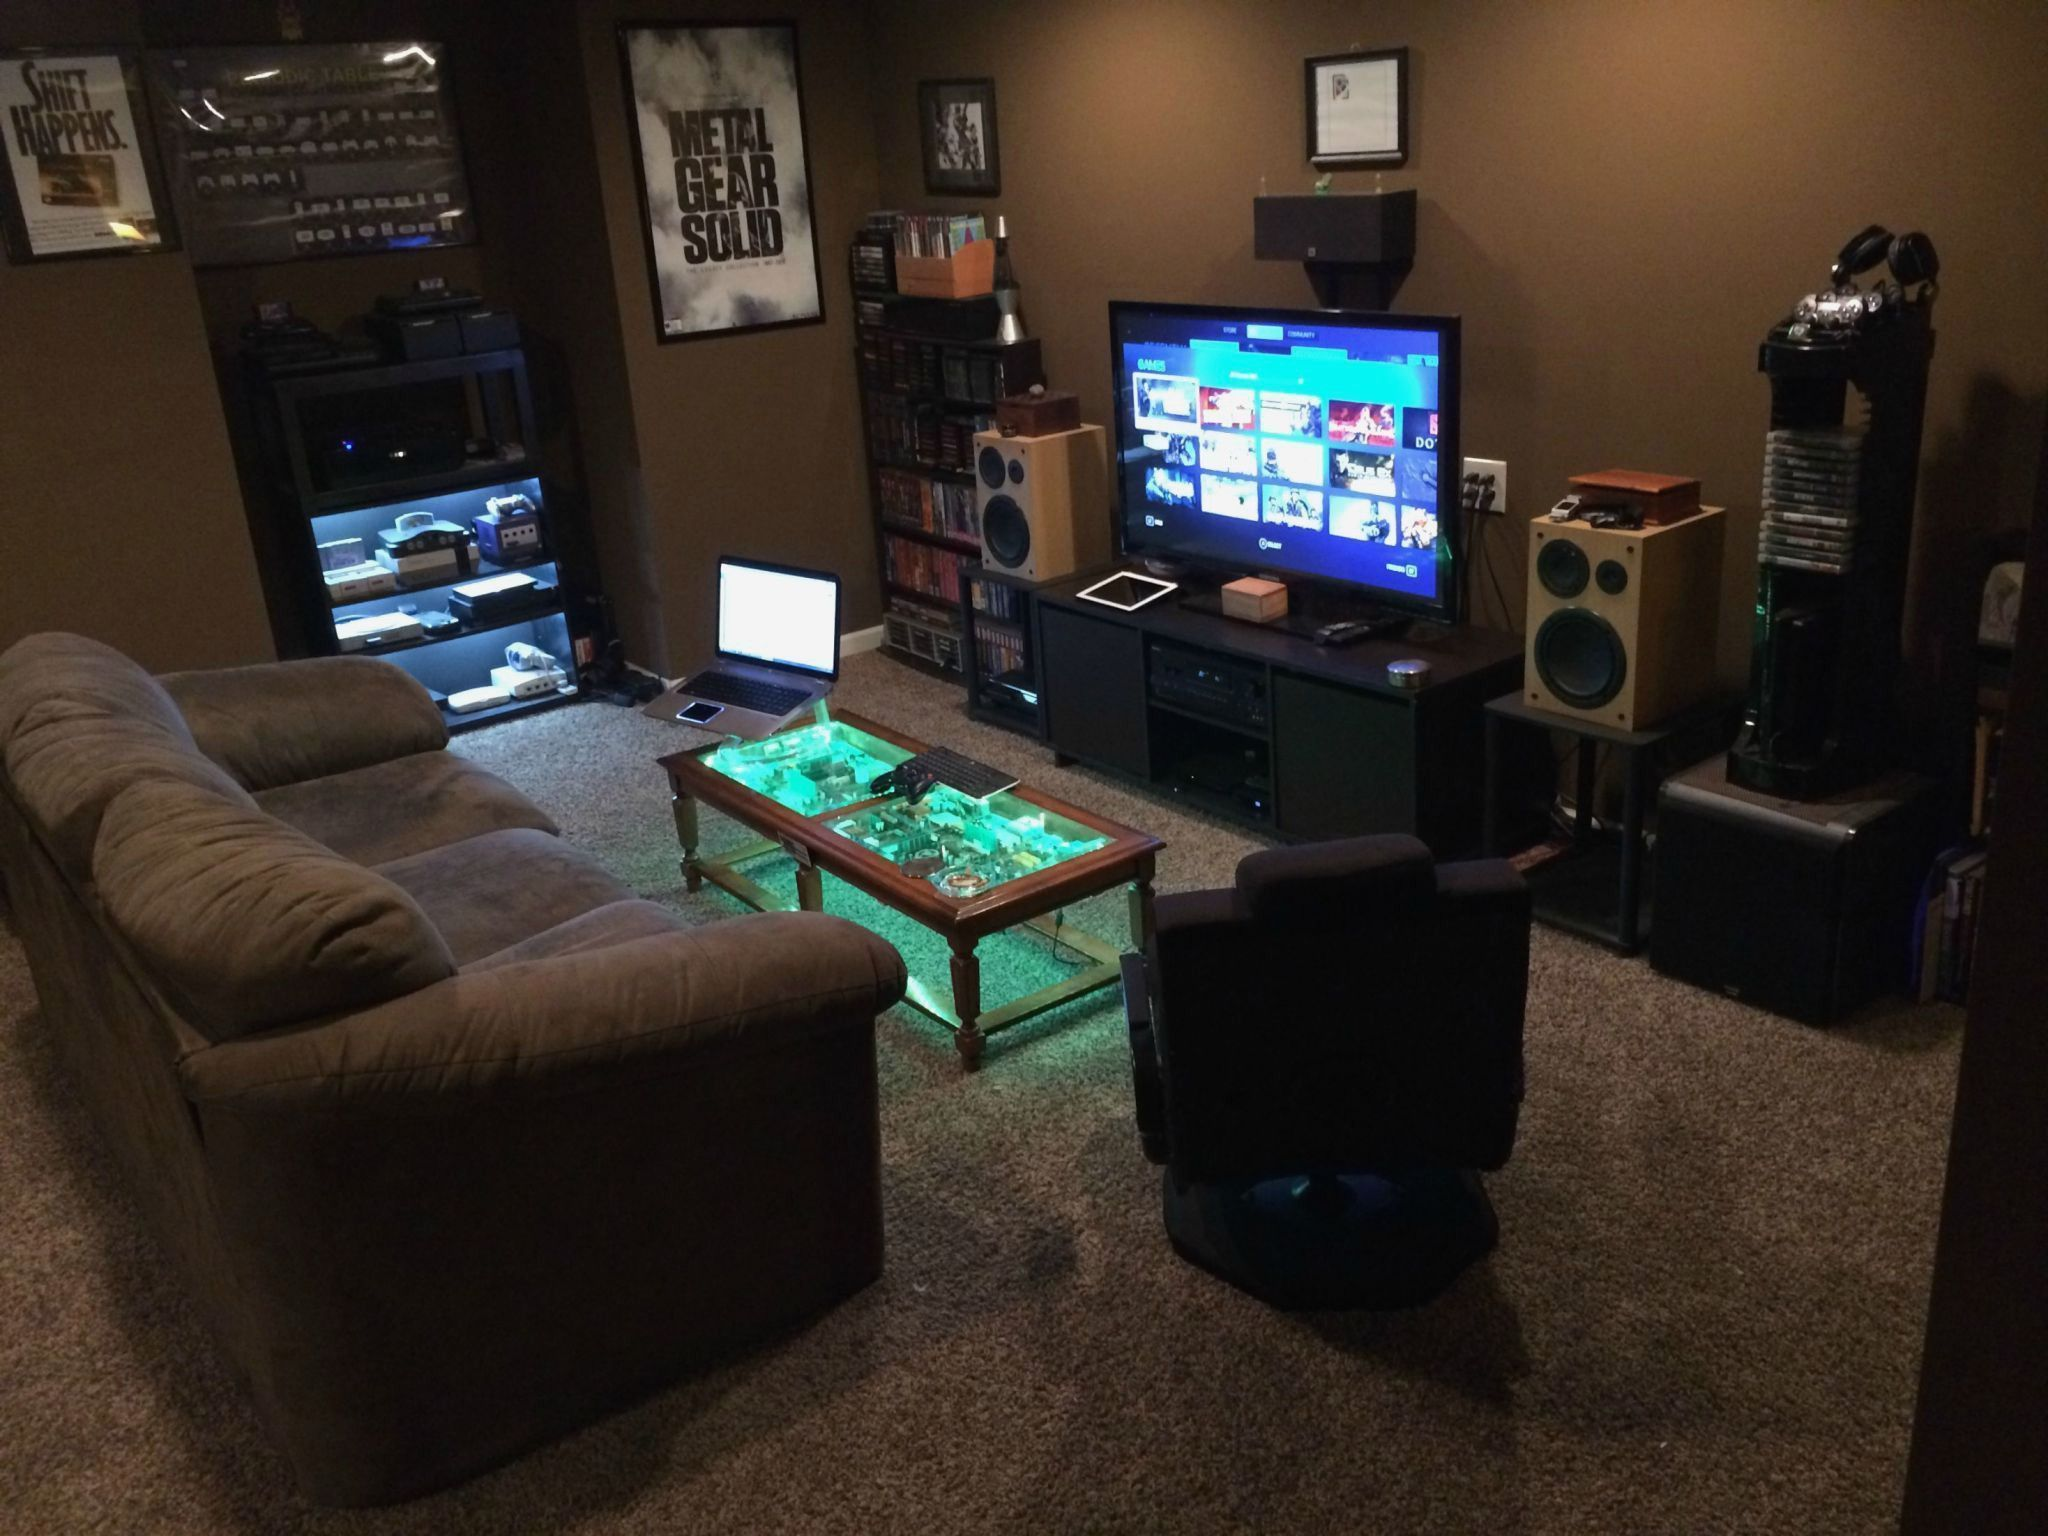 That is we're you come in. Brilliant Ideas Of Home Decor Simple Geek Room Decor Home ...